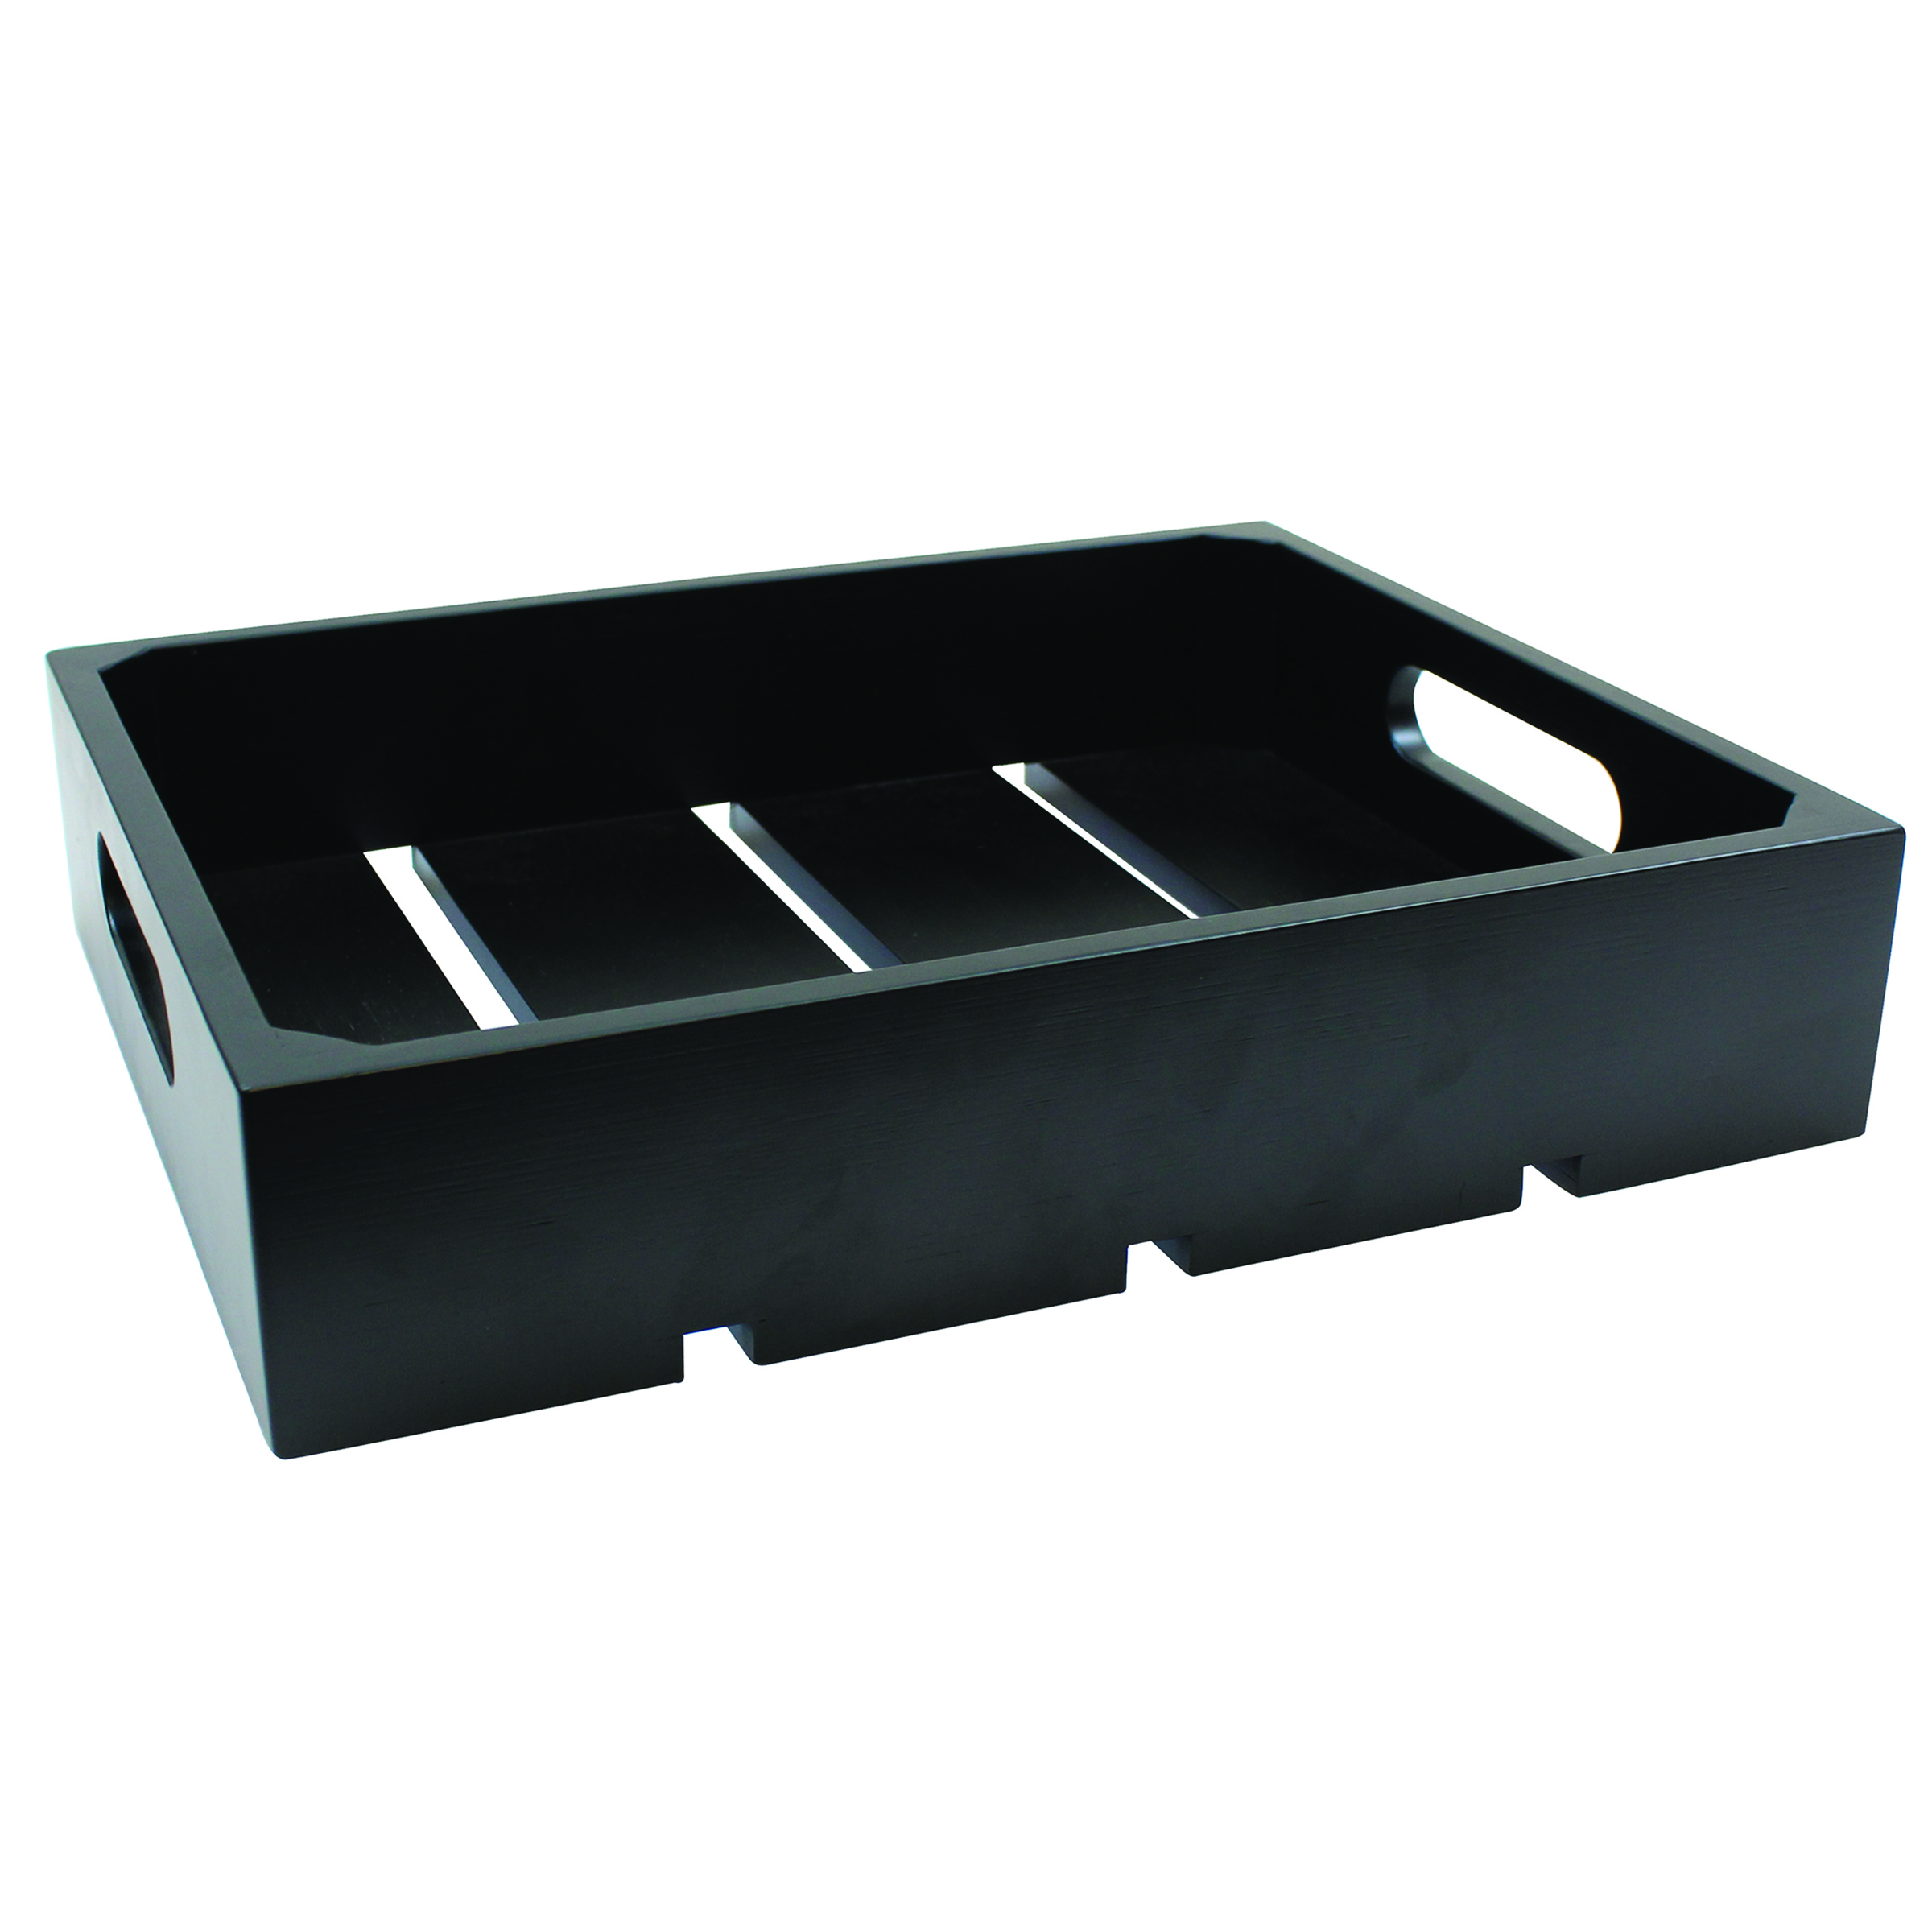 TableCraft Products CRATE12BK risers & displays